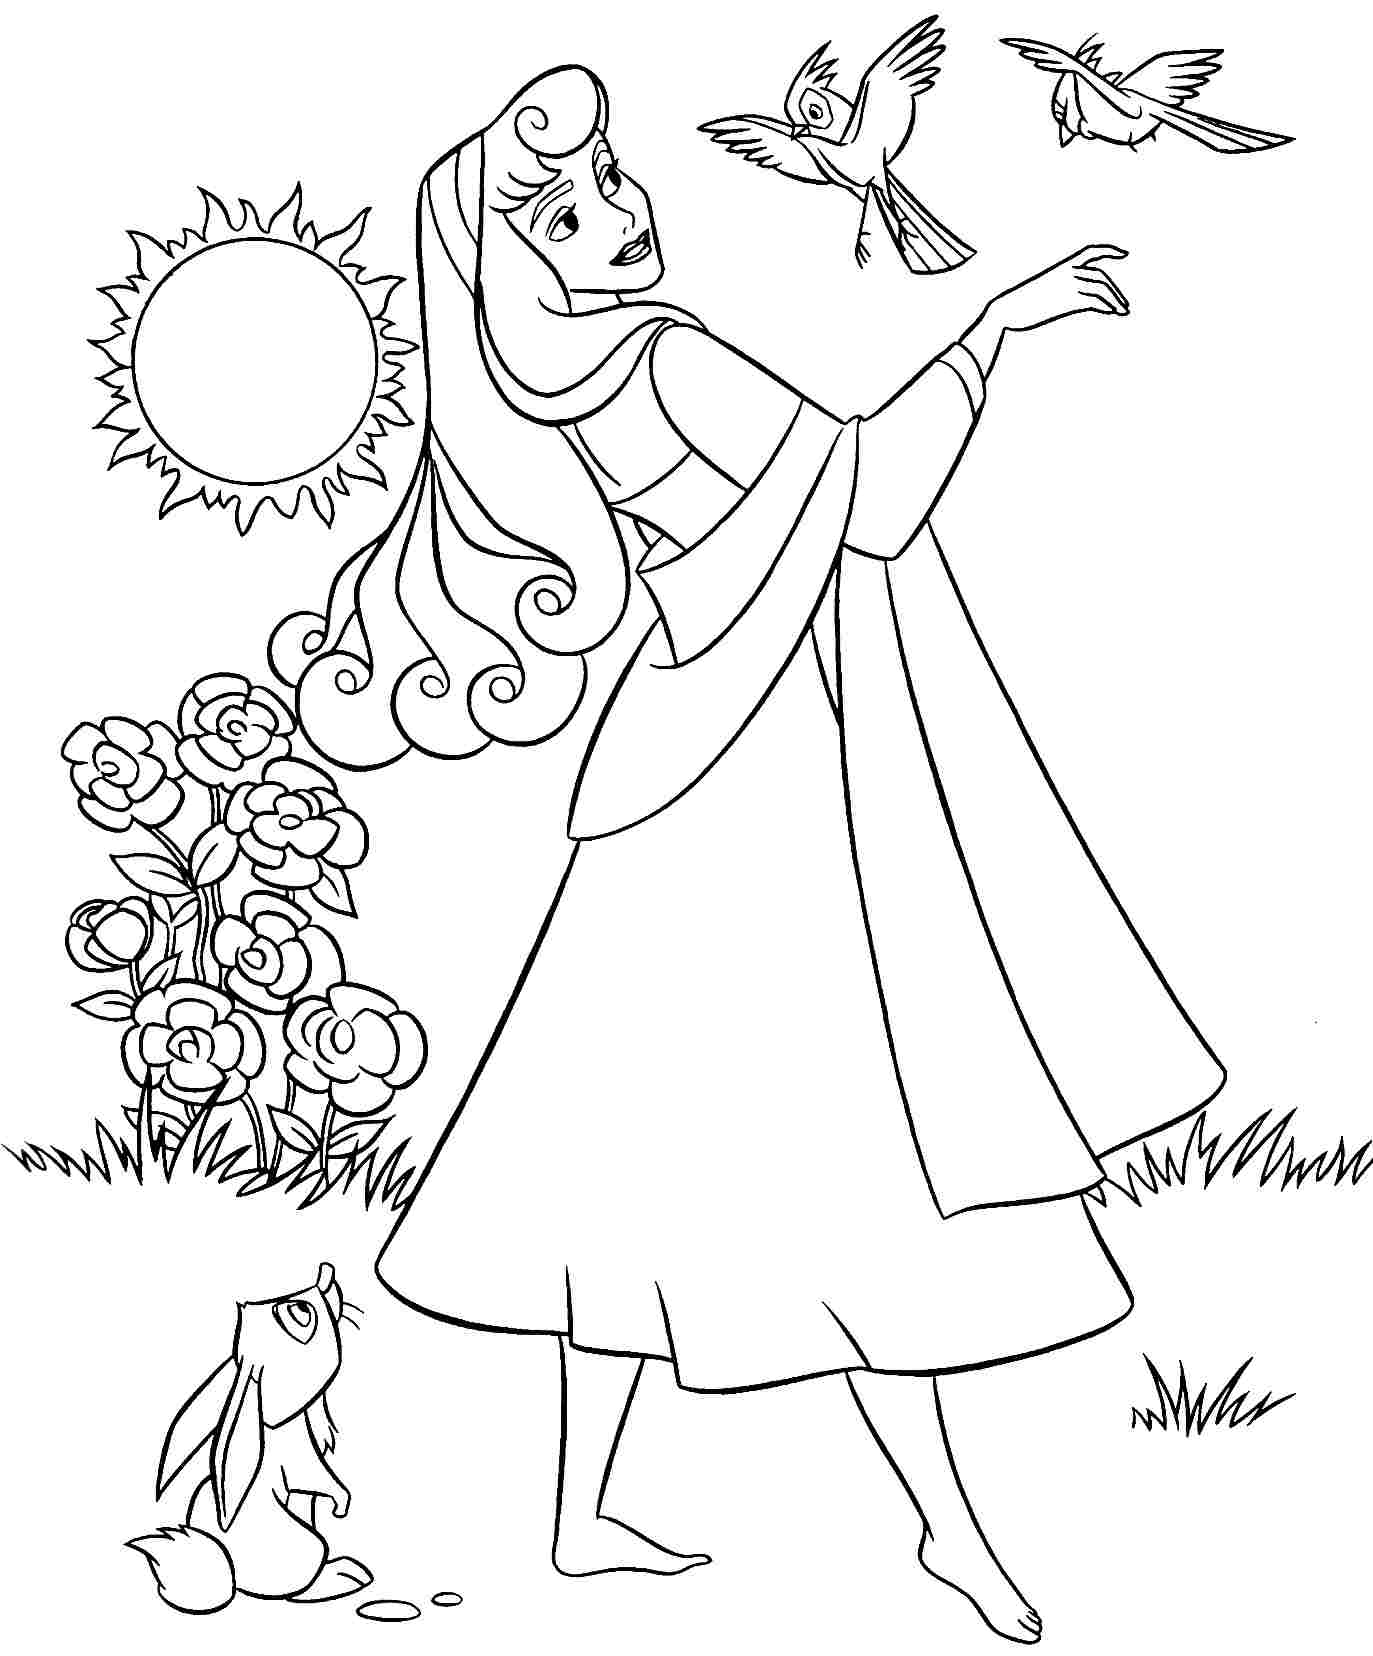 Sleeping Beauty Disney Coloring Pages 02